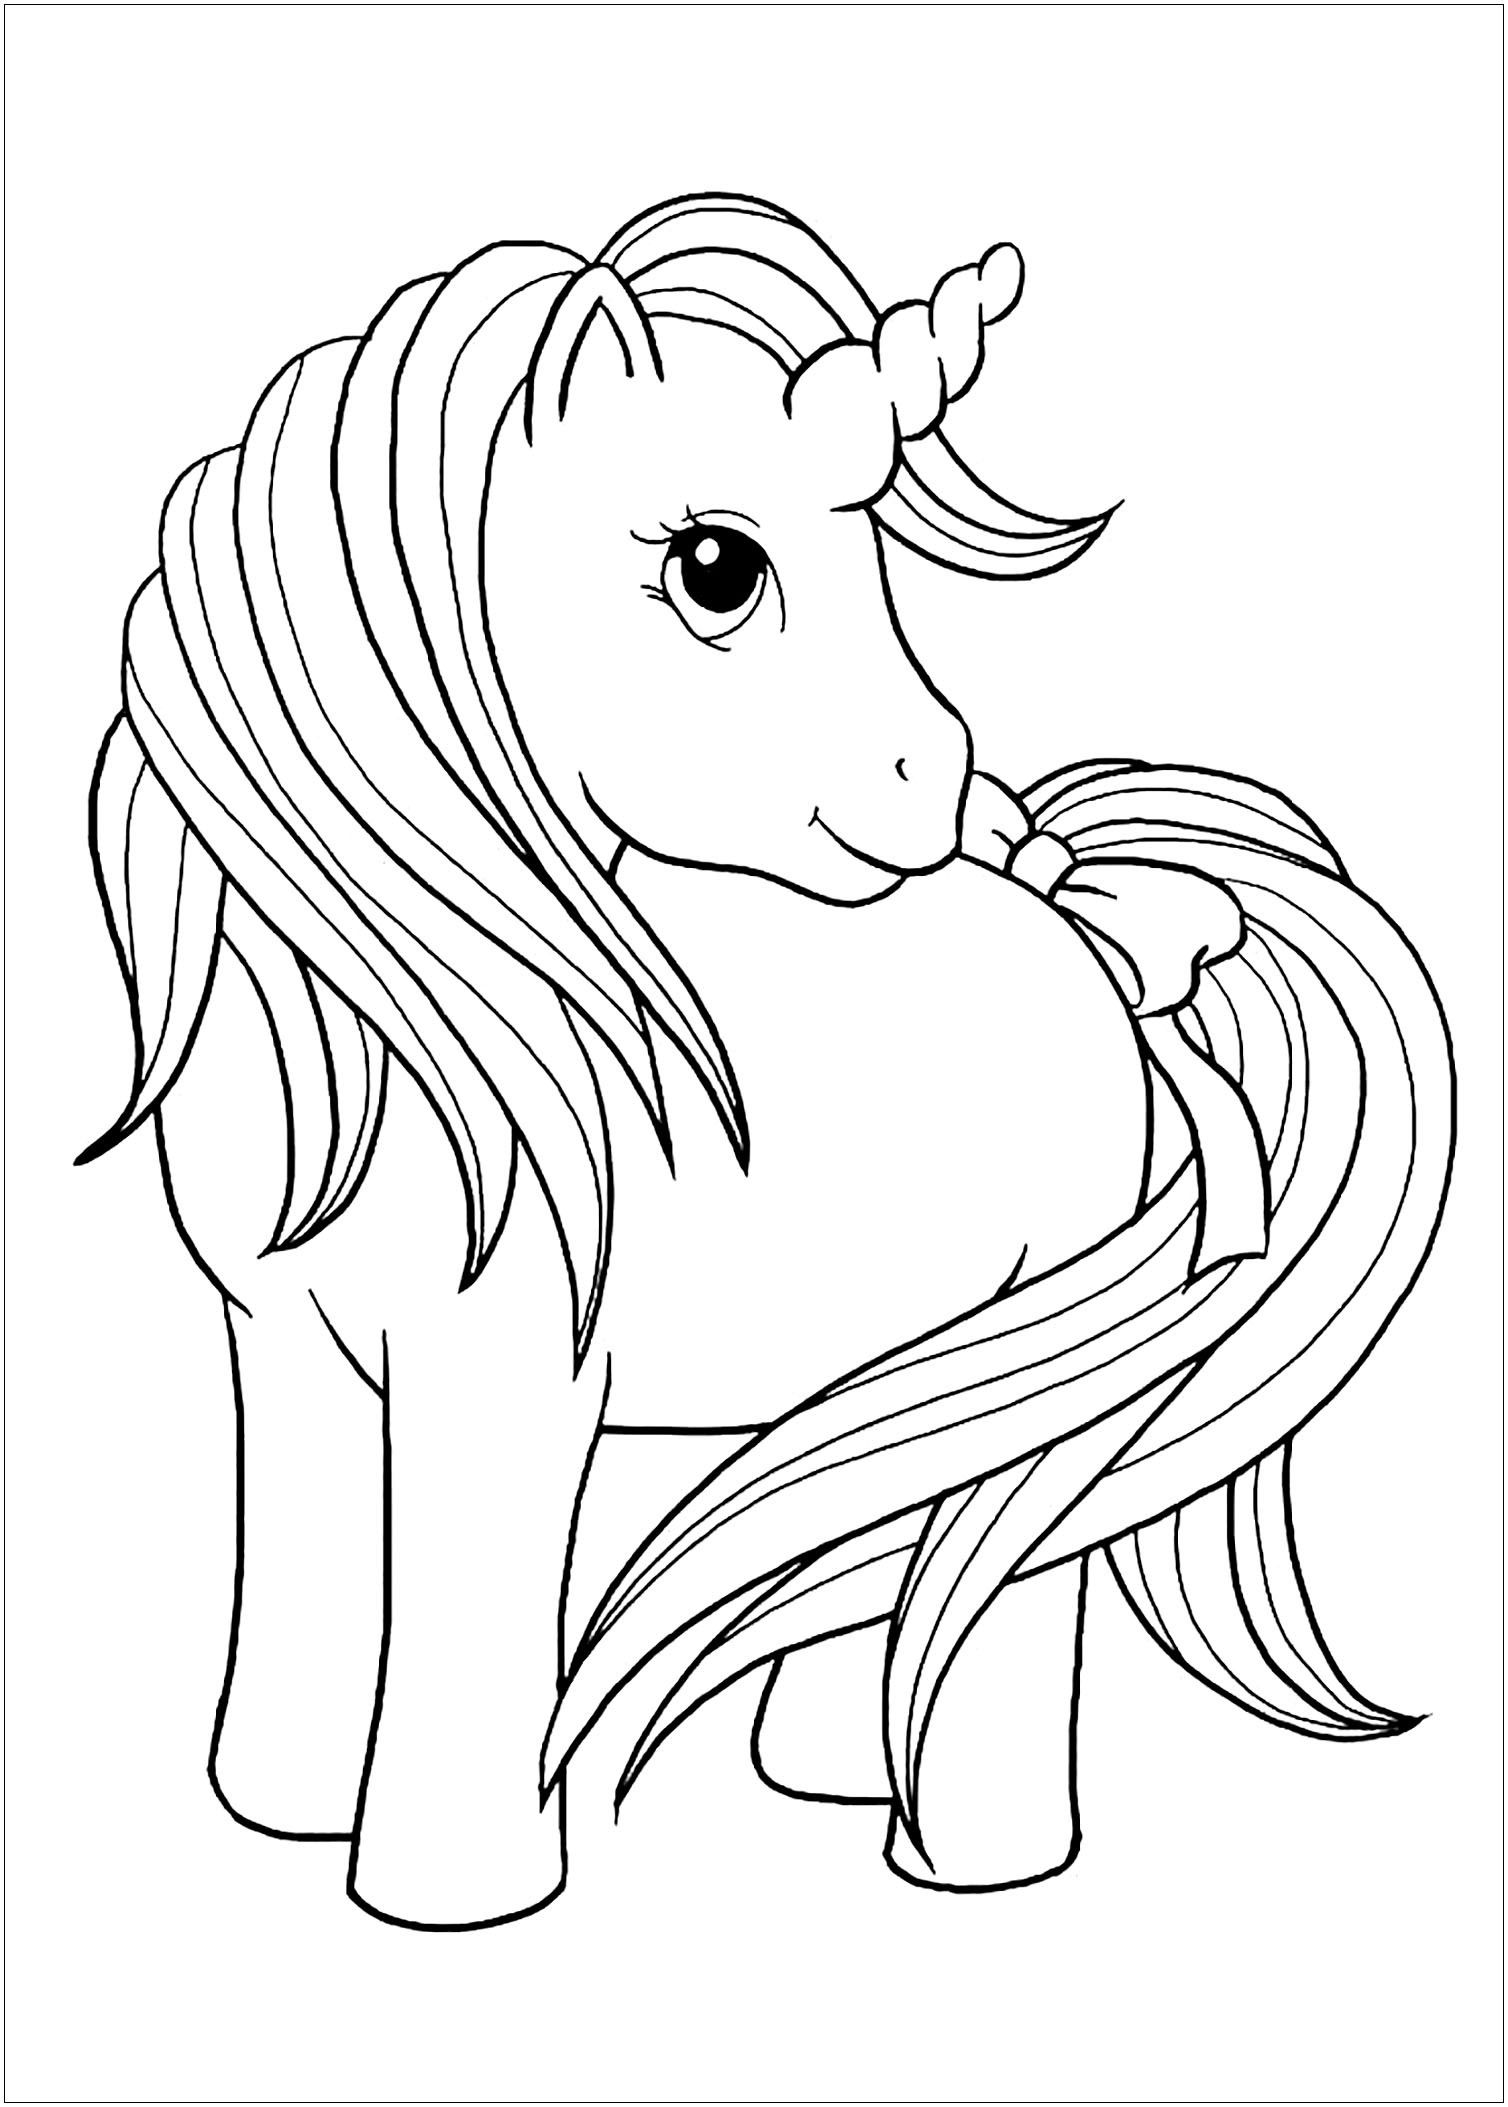 Princess Unicorn Coloring Page Youngandtae Com Horse Coloring Pages Animal Coloring Pages Cute Coloring Pages